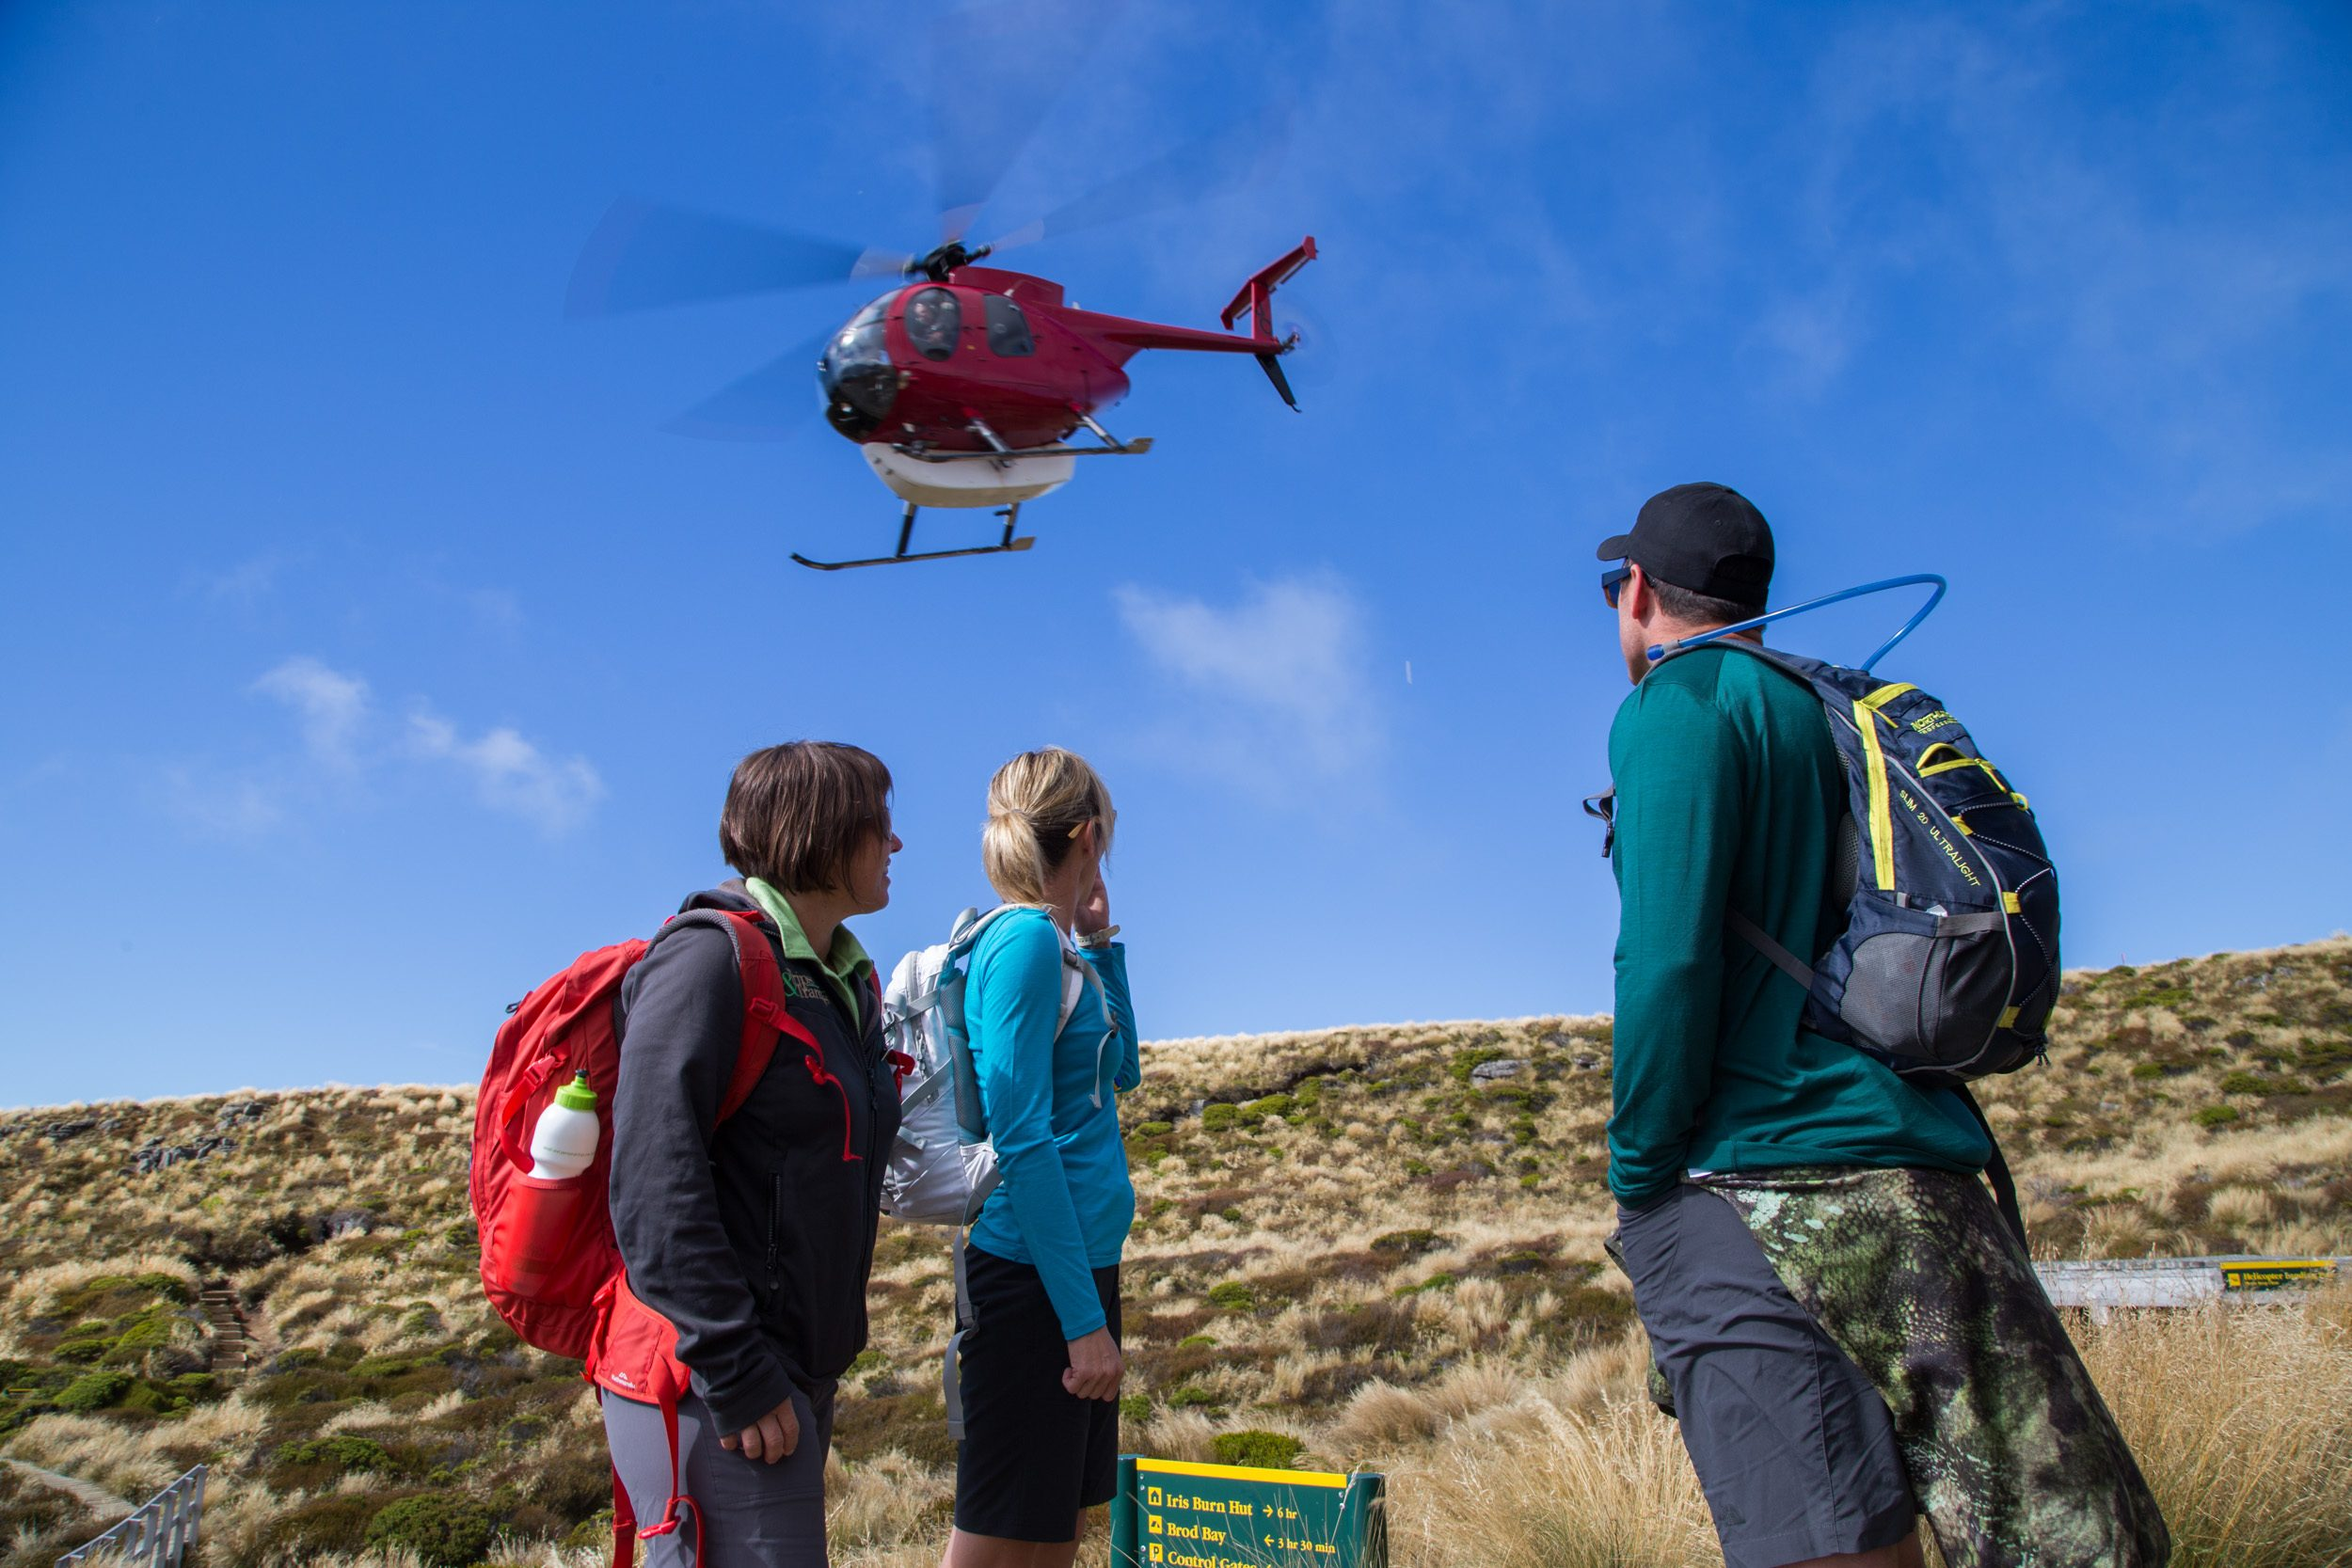 With the easy part over bid farewell to the helicopter and prepare for your hiking experience